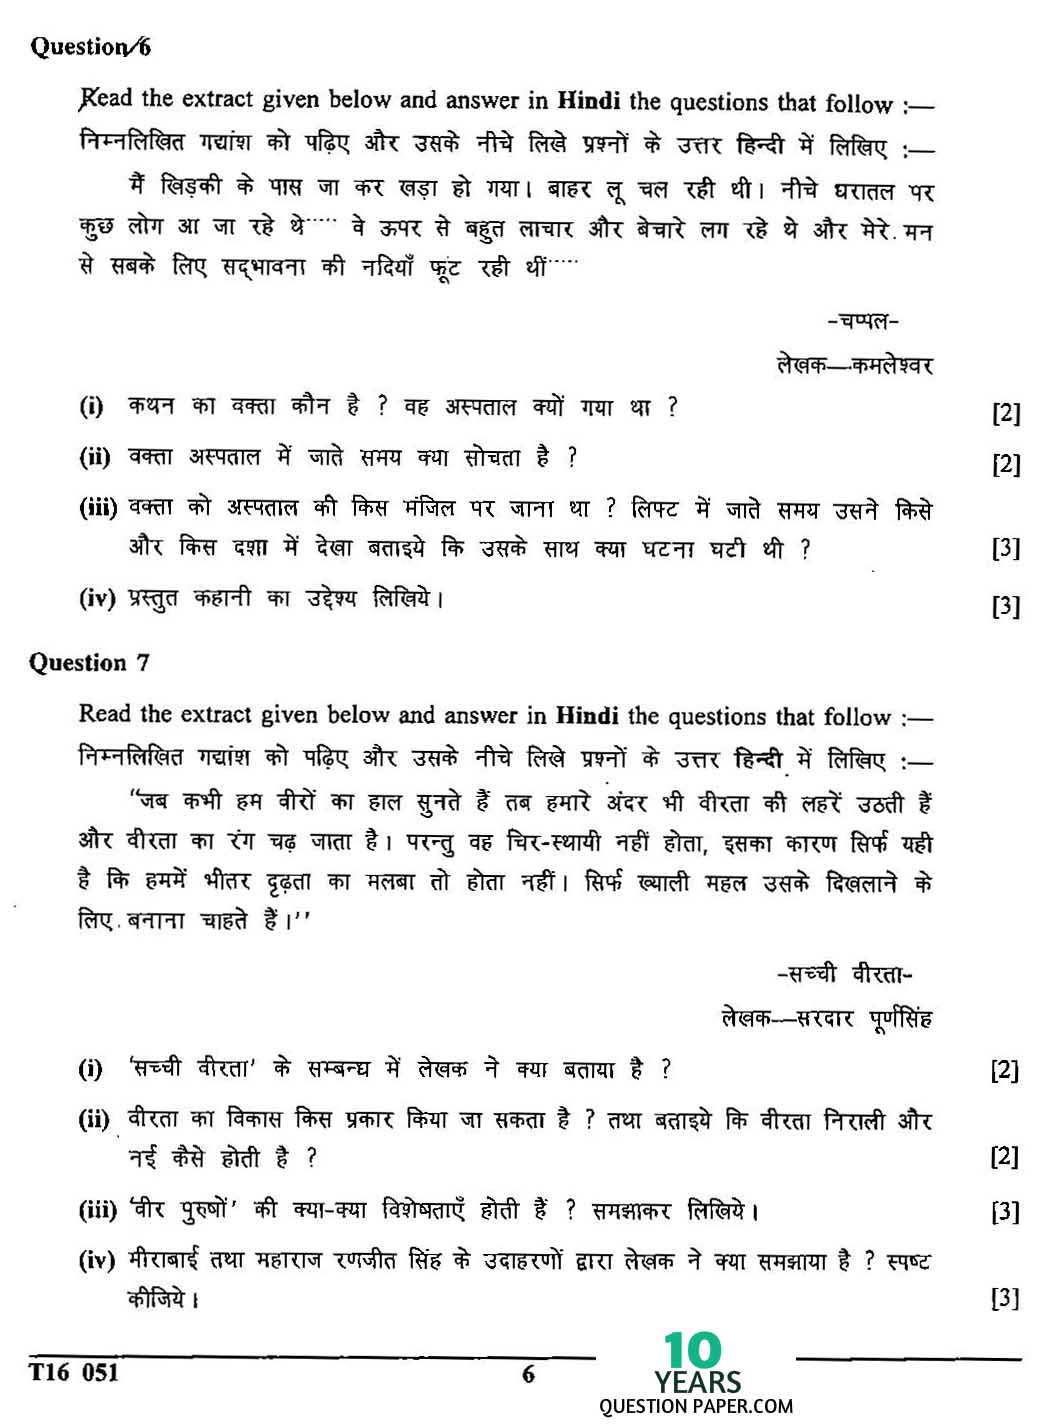 Unseen Passage With Questions And Answers For Class 6